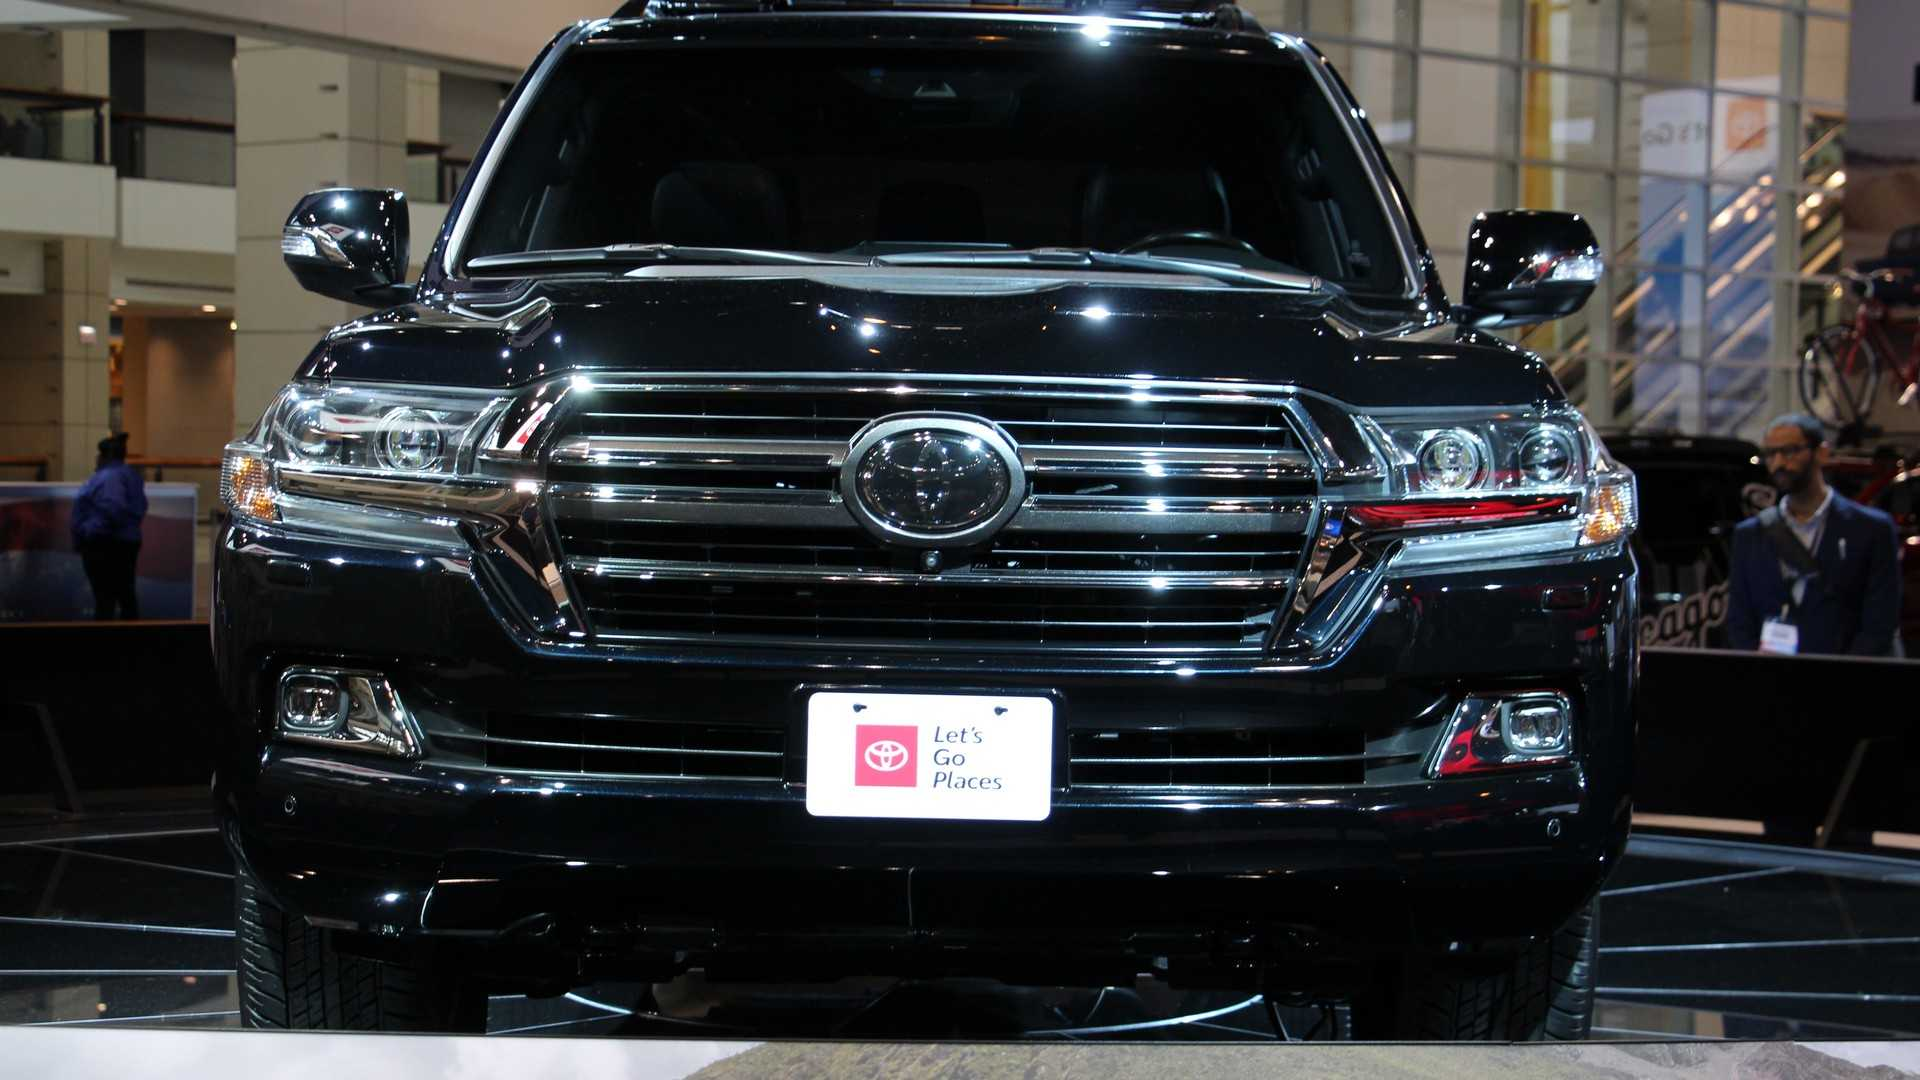 41 New 2020 Toyota Land Cruiser Exterior